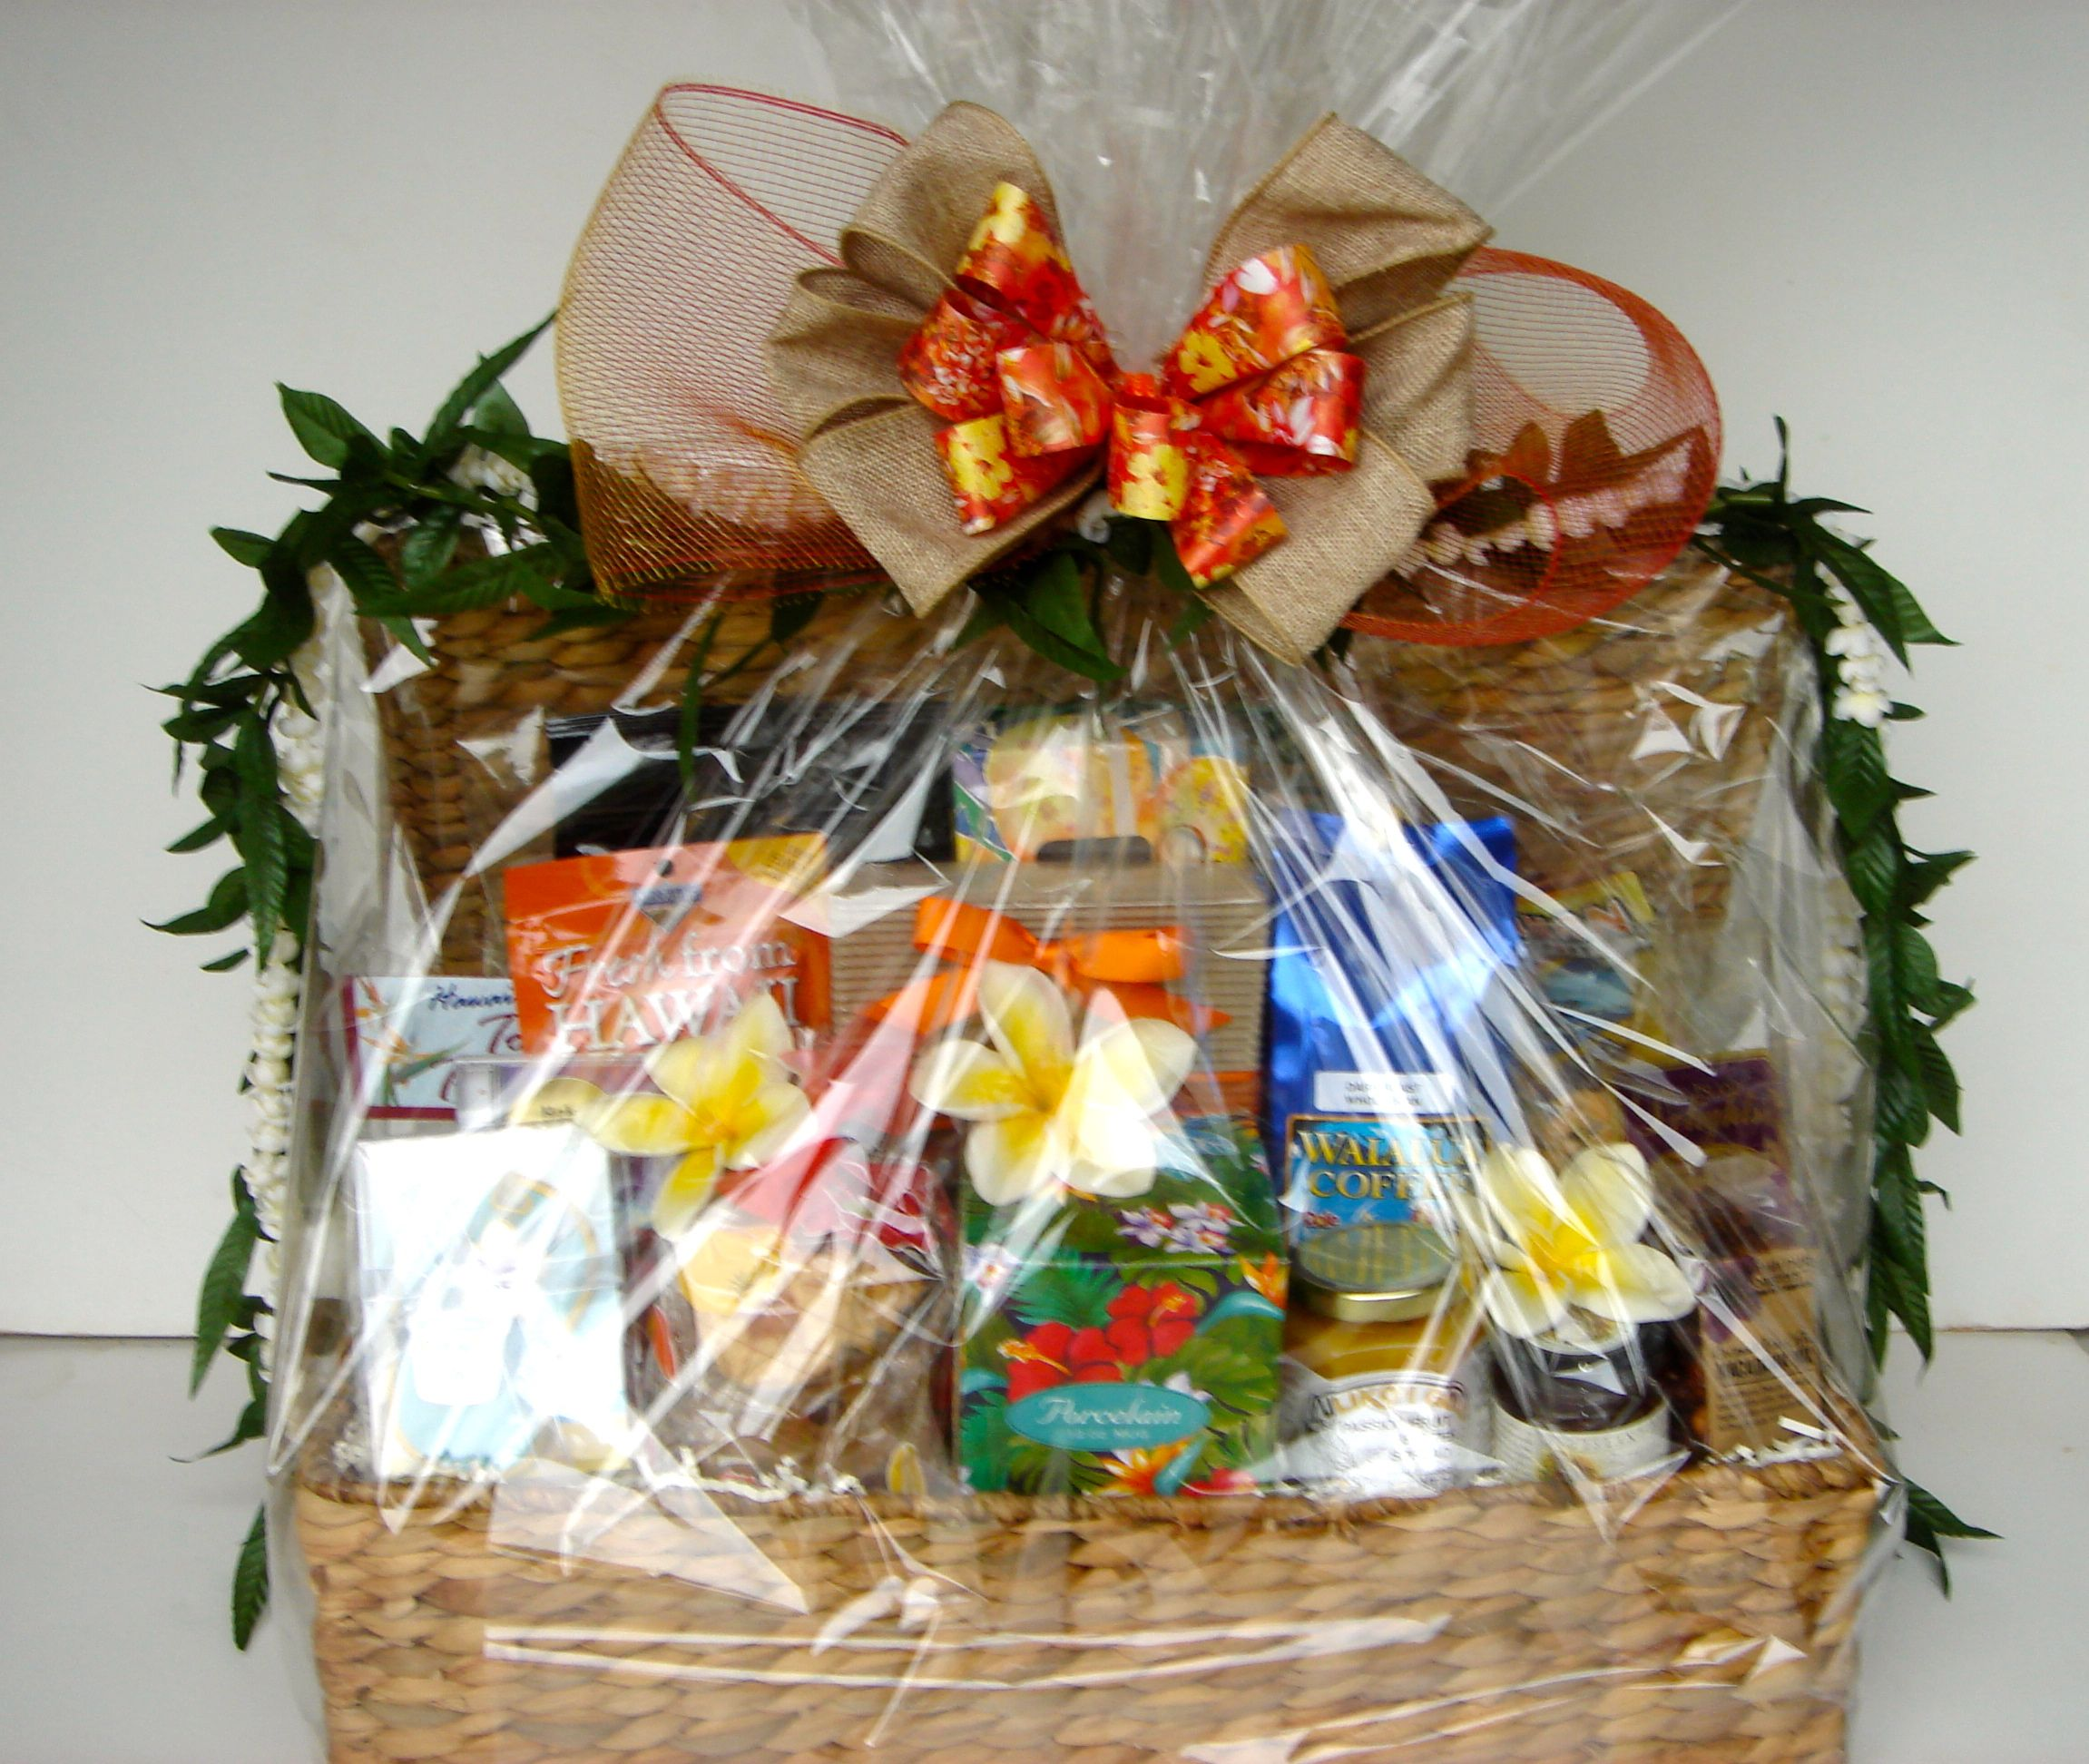 """Like this or more Hawaiian? """"Treasure of Paradise"""", an authentic Hawaiian gift basket. From: EXQUISITE BASKET EXPRESSIONS (Honolulu, Hawai'i). www."""